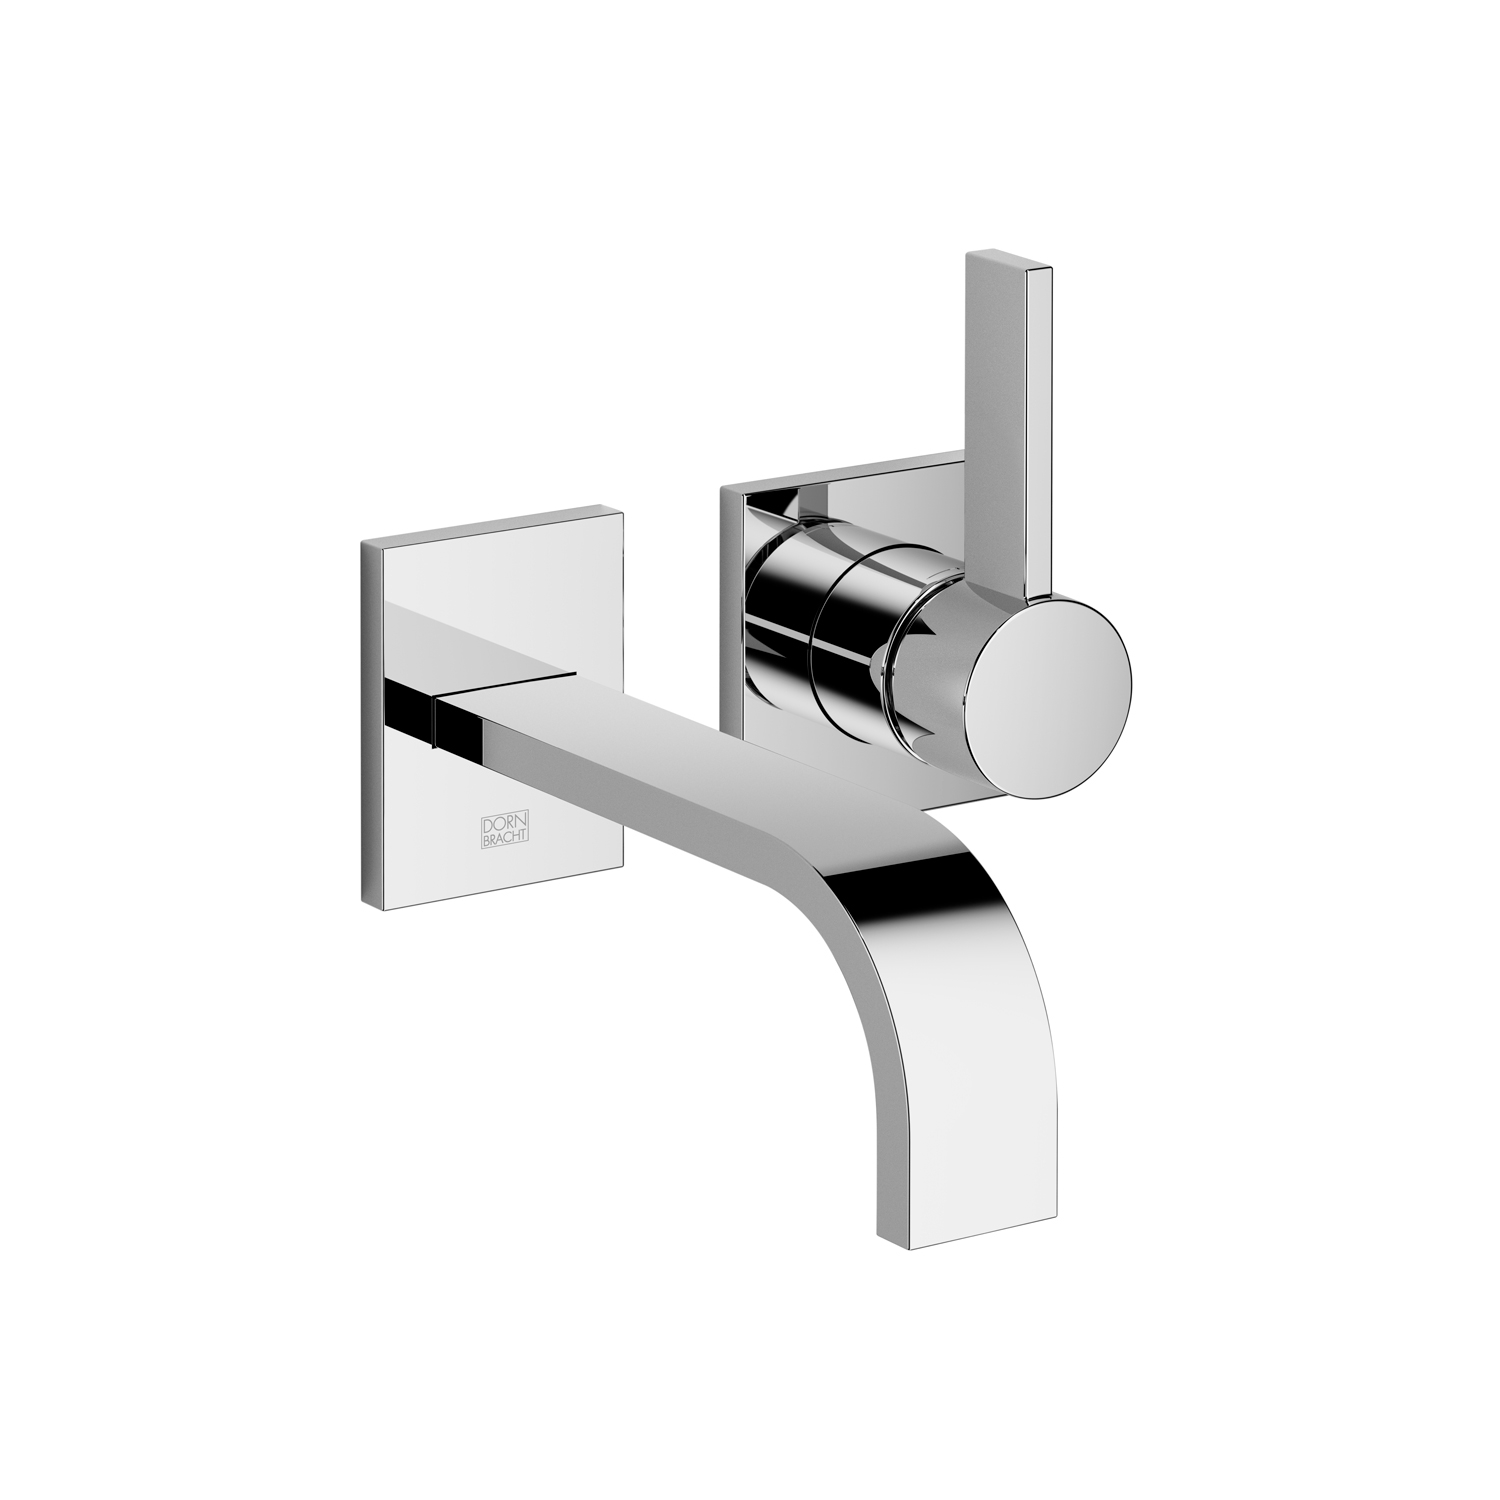 Dornbracht 36810782-000010 MEM Wall-Mounted Single-Lever Mixer without Drain - Polished Chrome